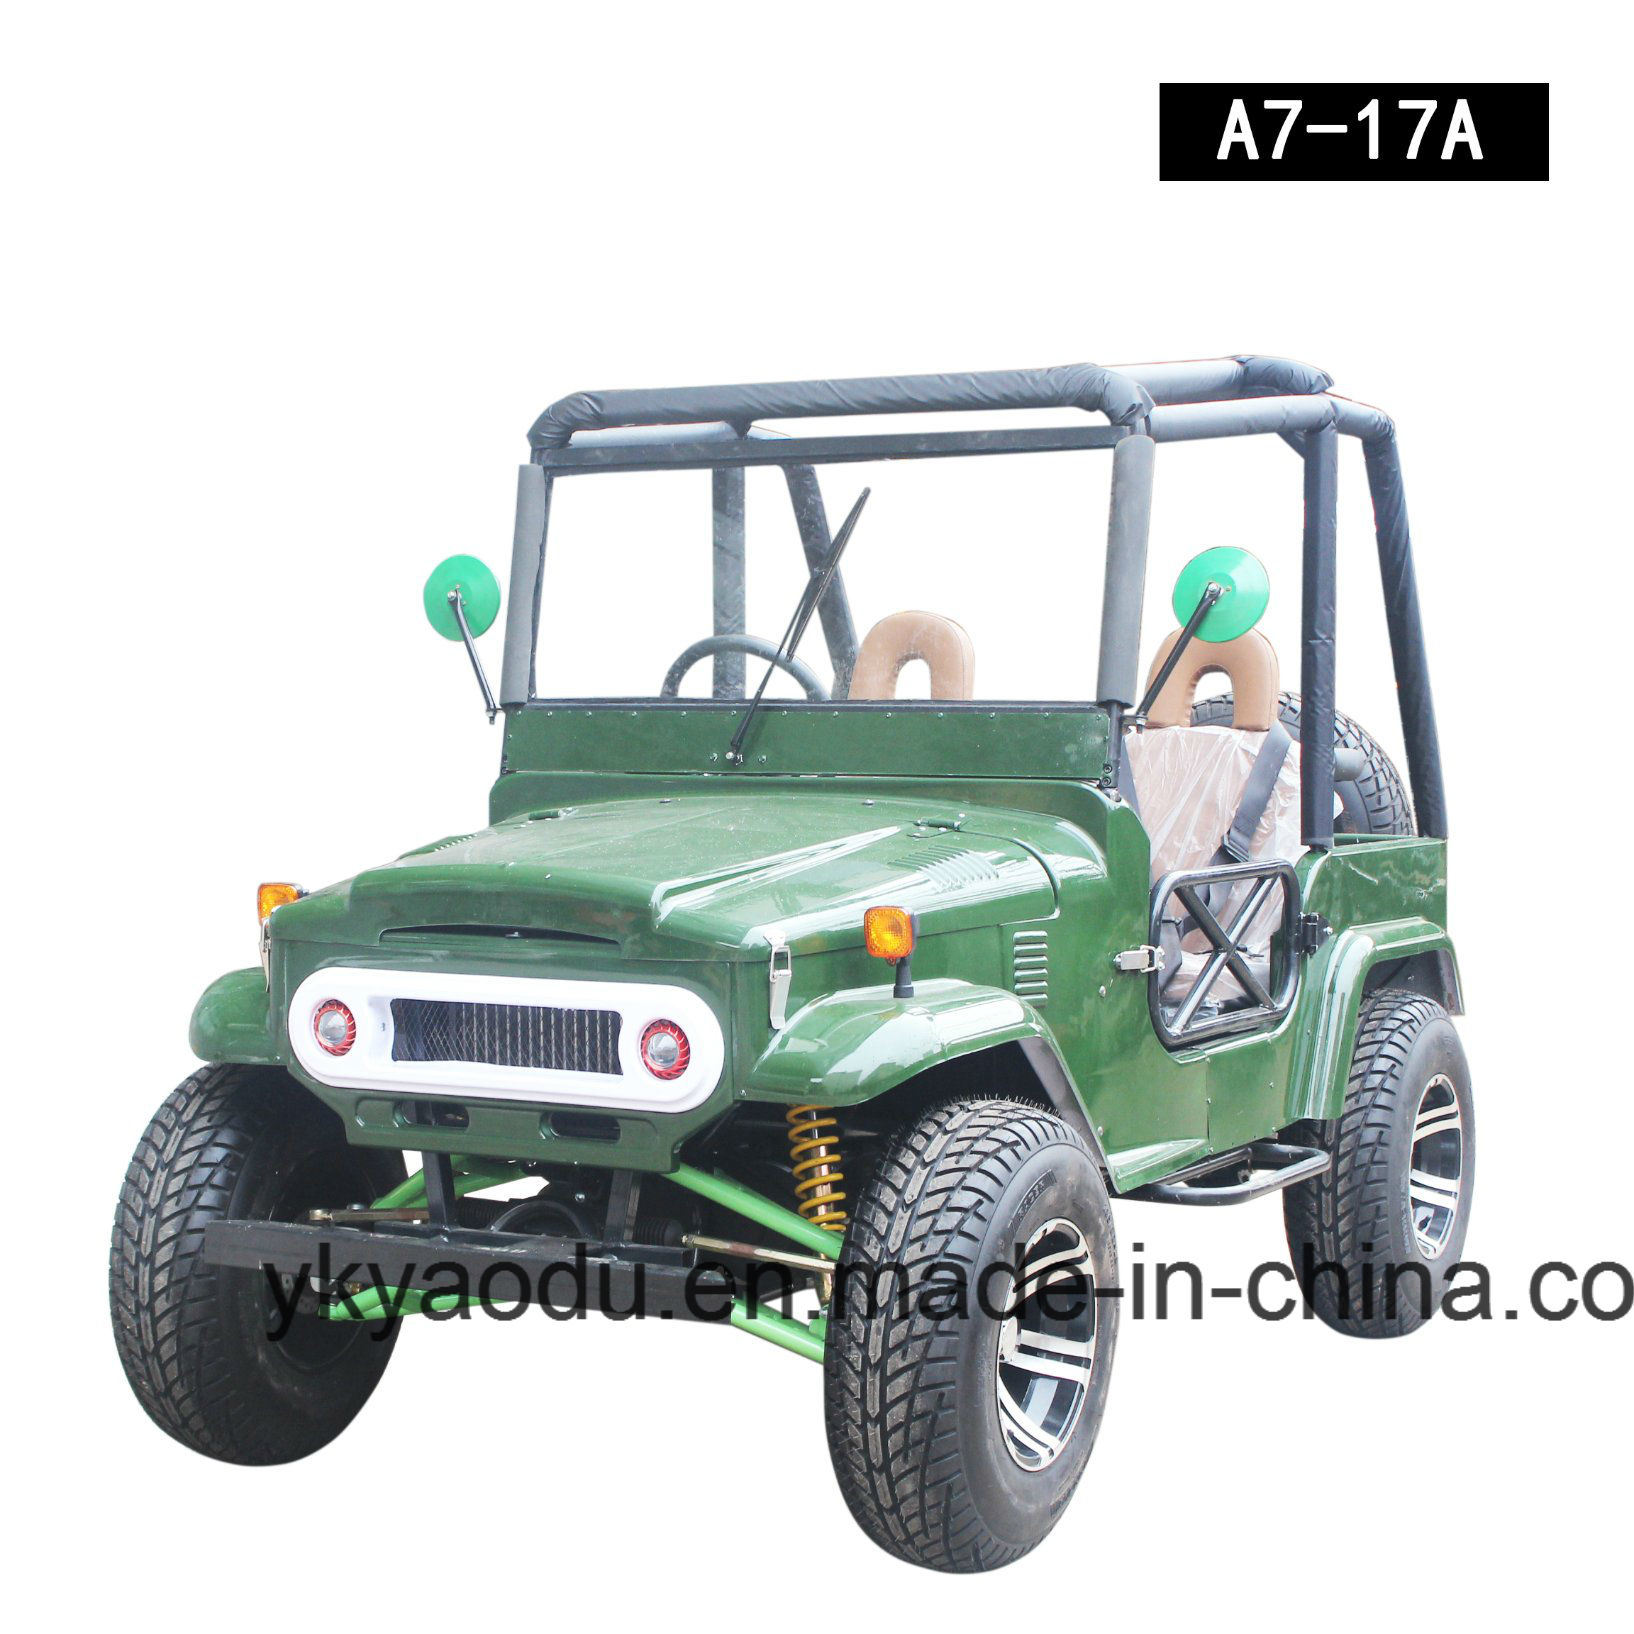 Best Selling Mini Jeep Willys with 150cc, 200cc, 300cc Engine Optional